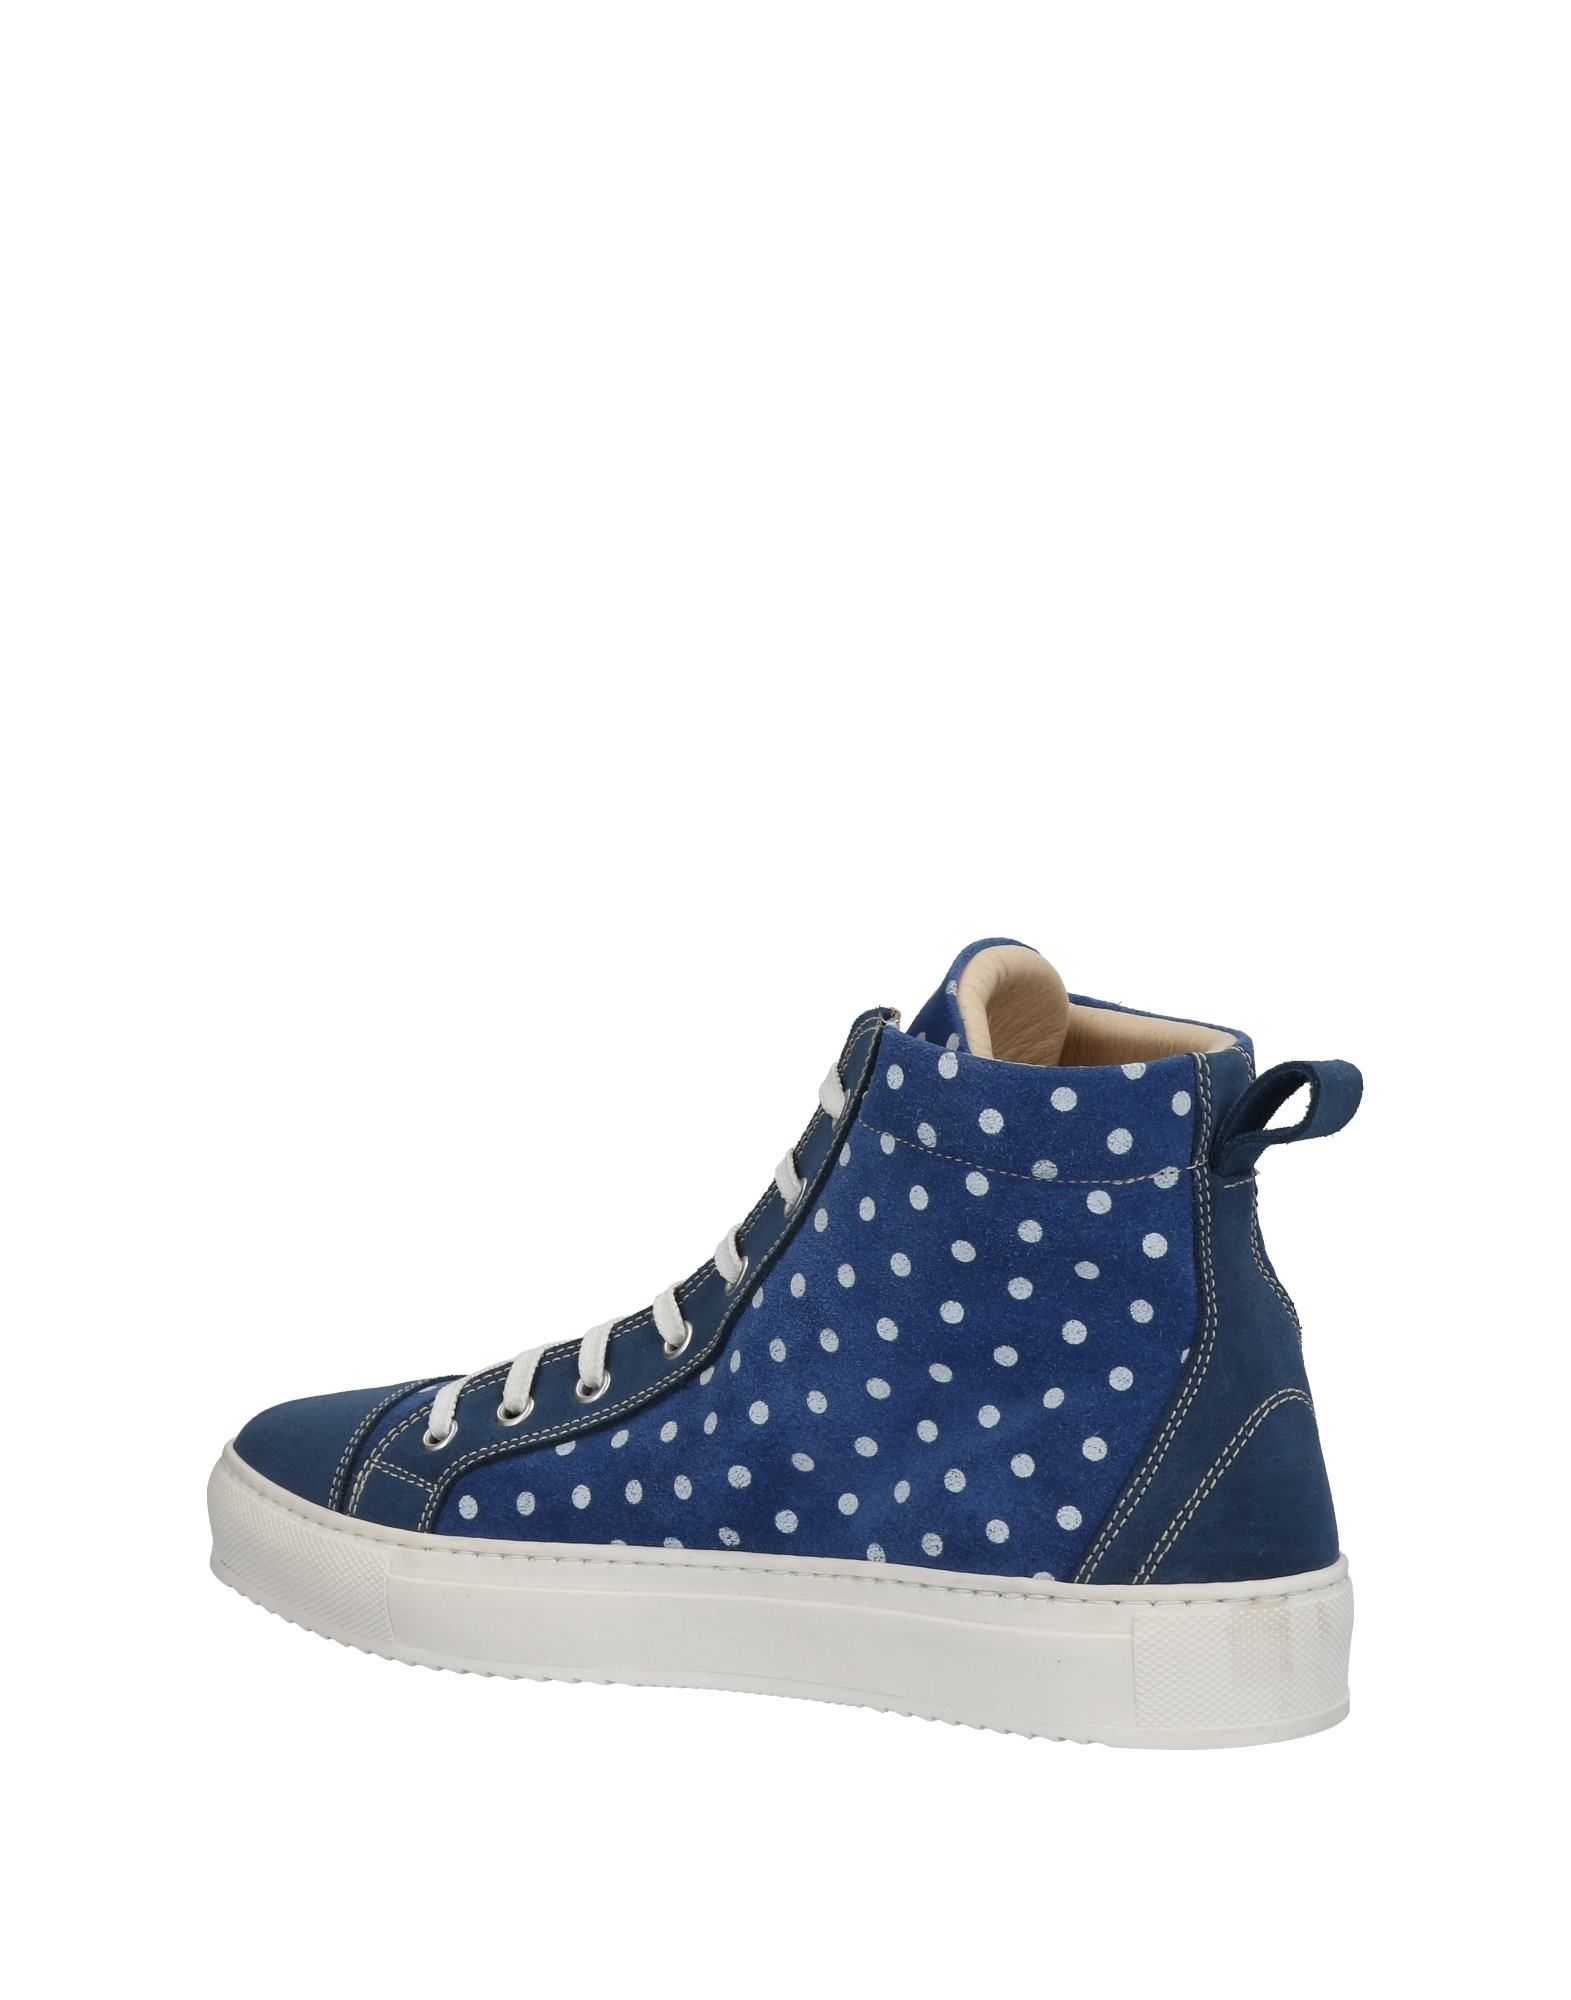 ... Sneakers Gold Brothers Femme - Sneakers Gold Brothers sur ...